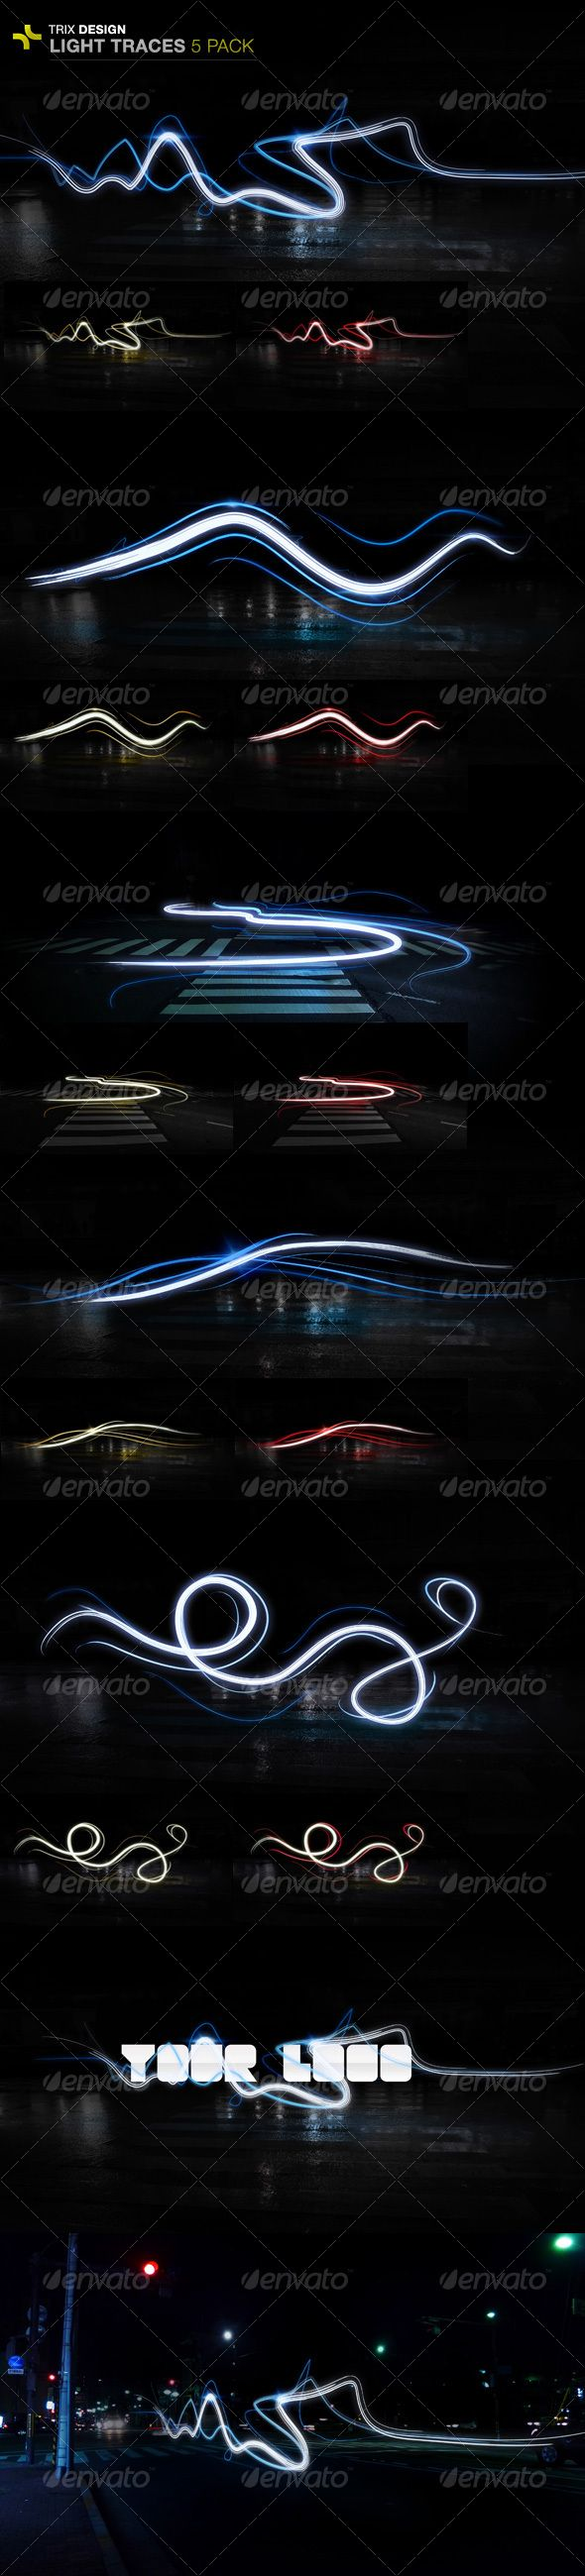 5 unique and fully flexible light trails with 3 different colour variations per trail and 2 examples of how these light trails can be added to your graphics.